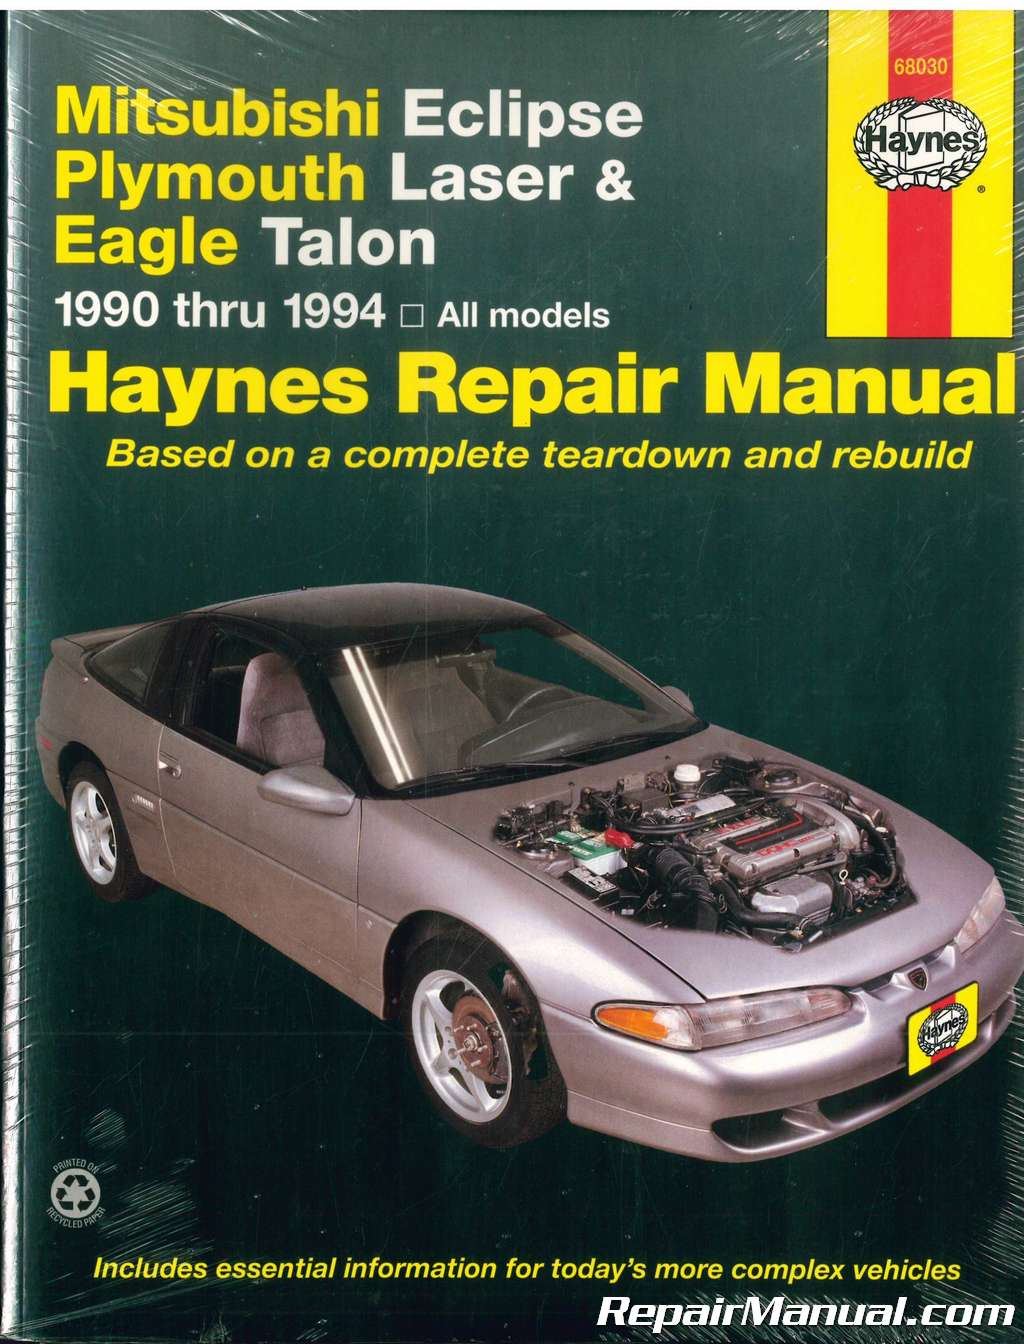 1997 Eagle Talon Motor Diagram Trusted Wiring Diagrams Mitsubishi Eclipse Fuse 96 Tsi U2022 Rh 144 202 50 143 For